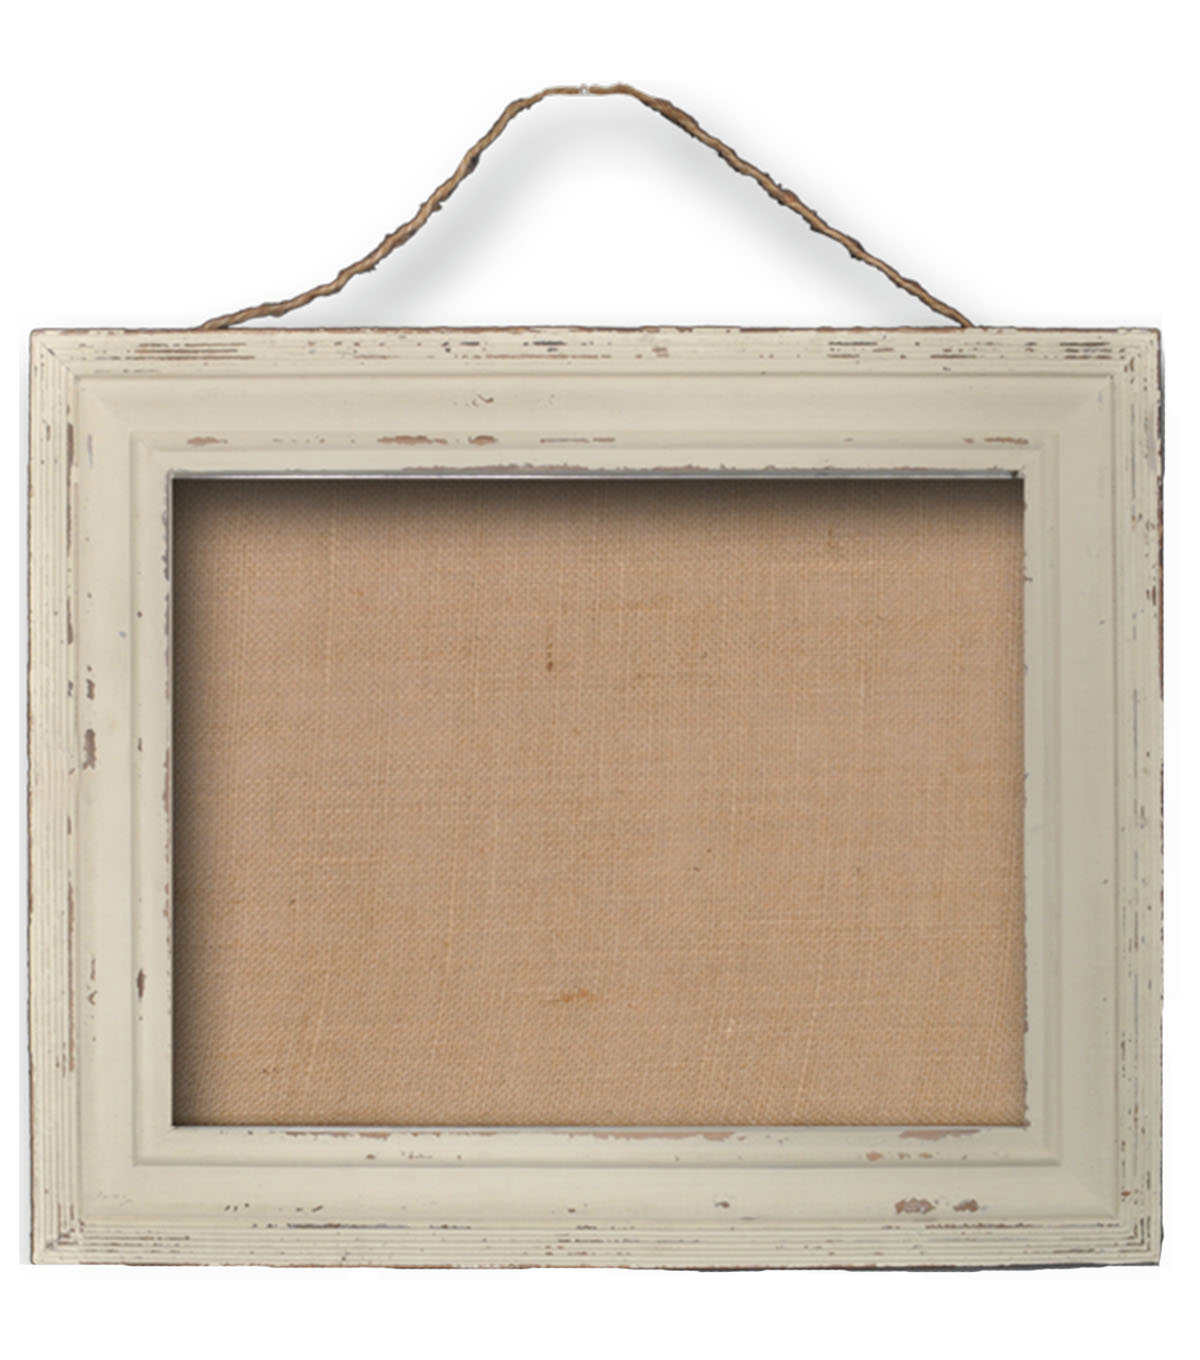 Burlap Bulletin Board with Jute Rope-White Wash